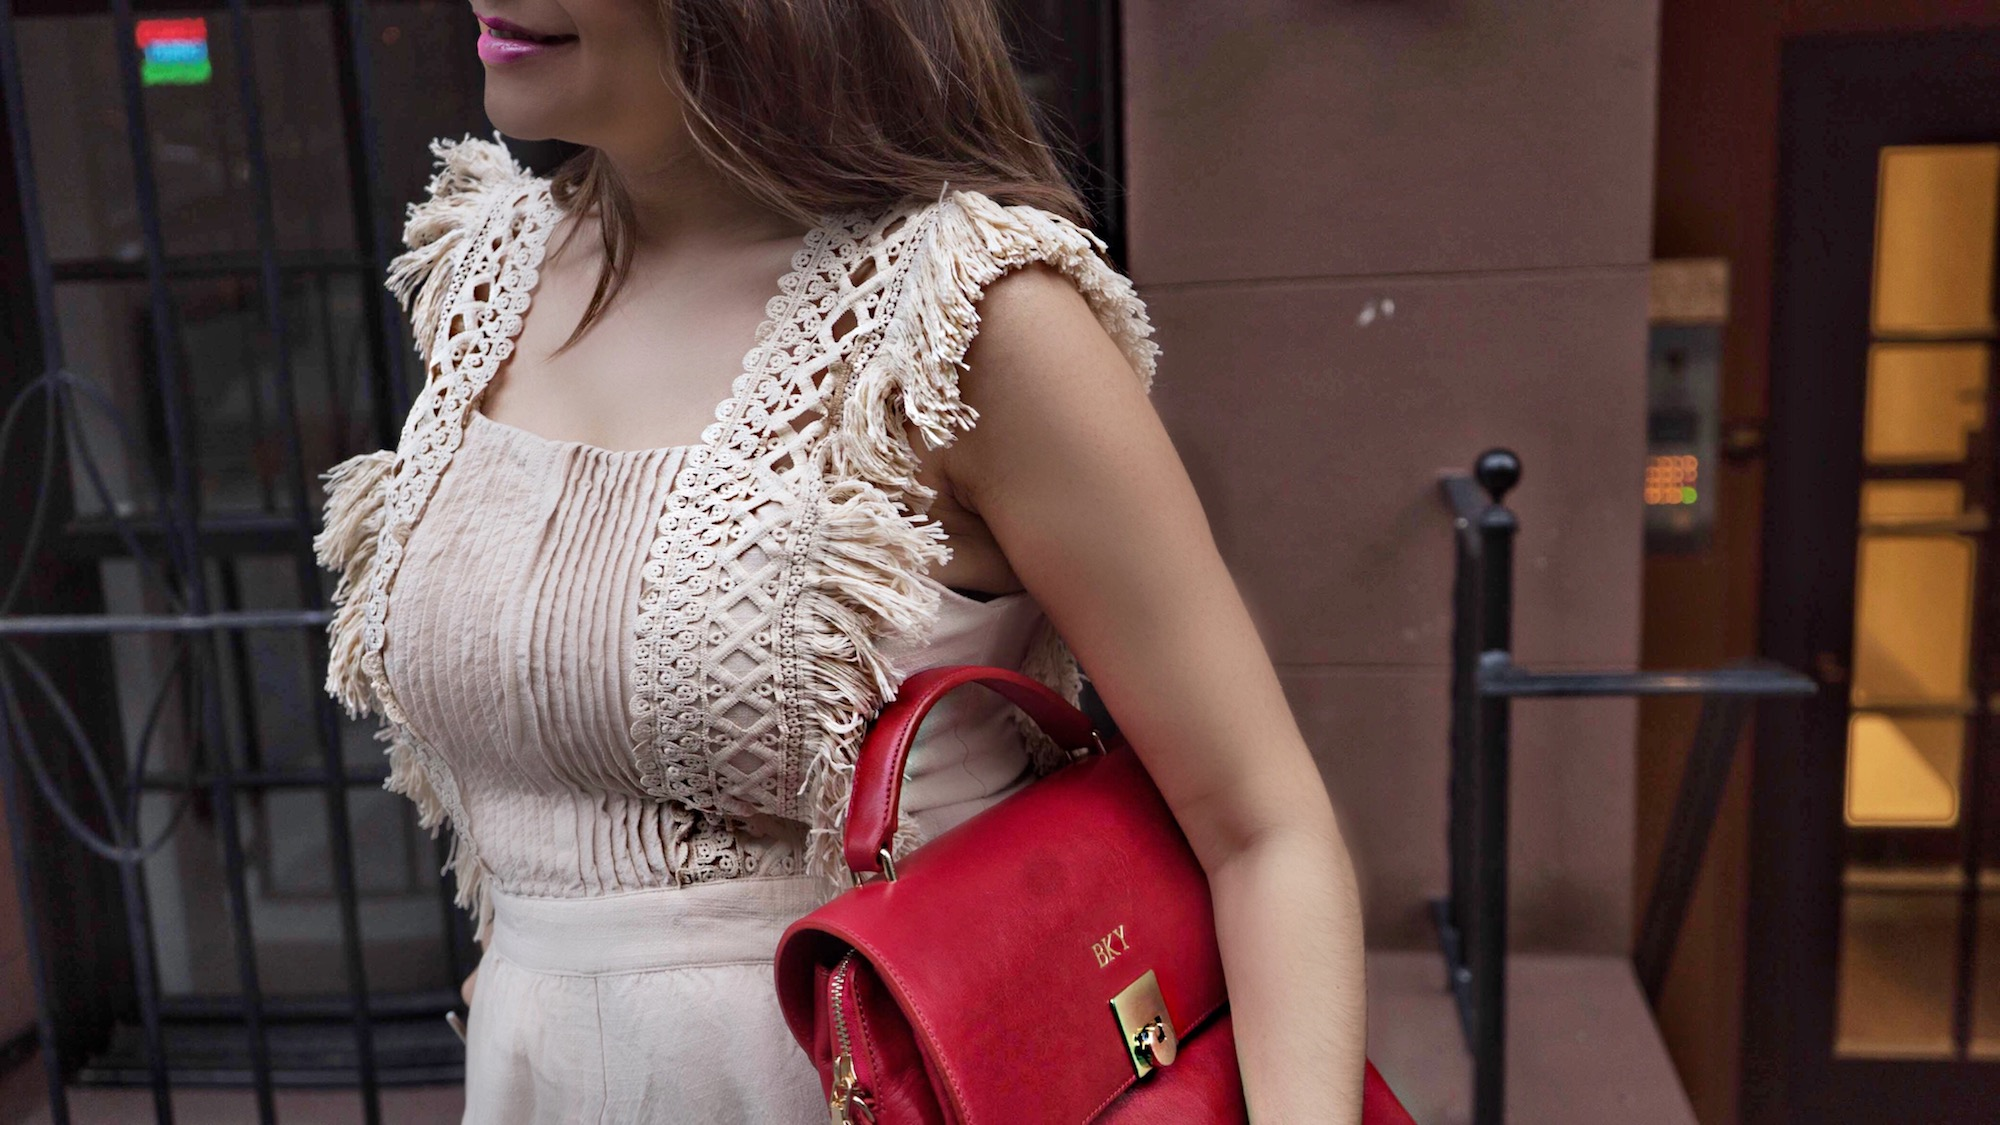 embroidery-romper-alley-girl-new-york-fashion-blogger